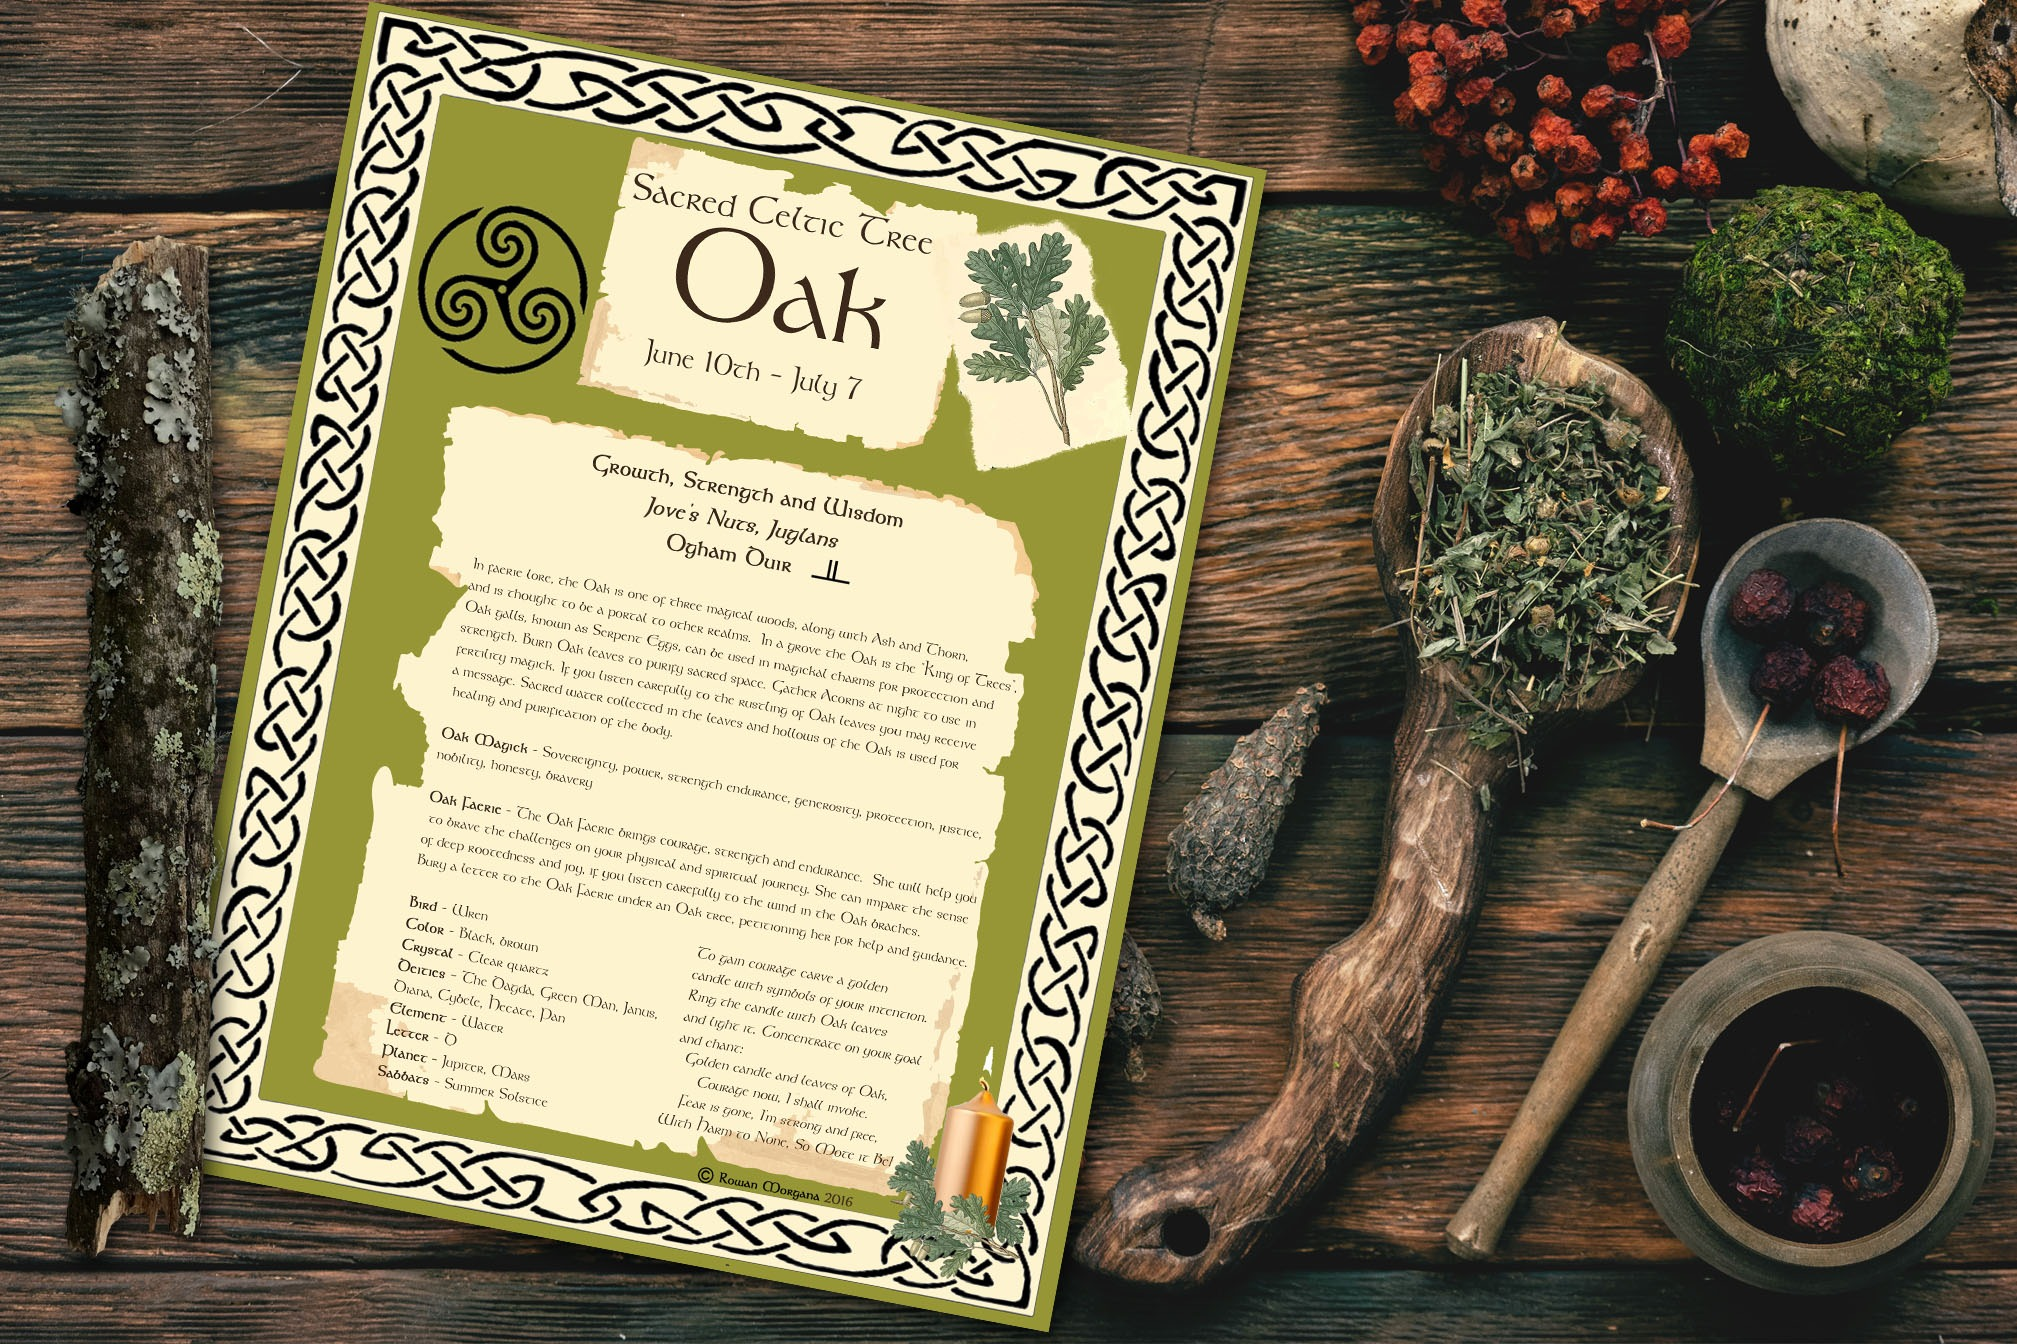 OAK CELTIC TREE